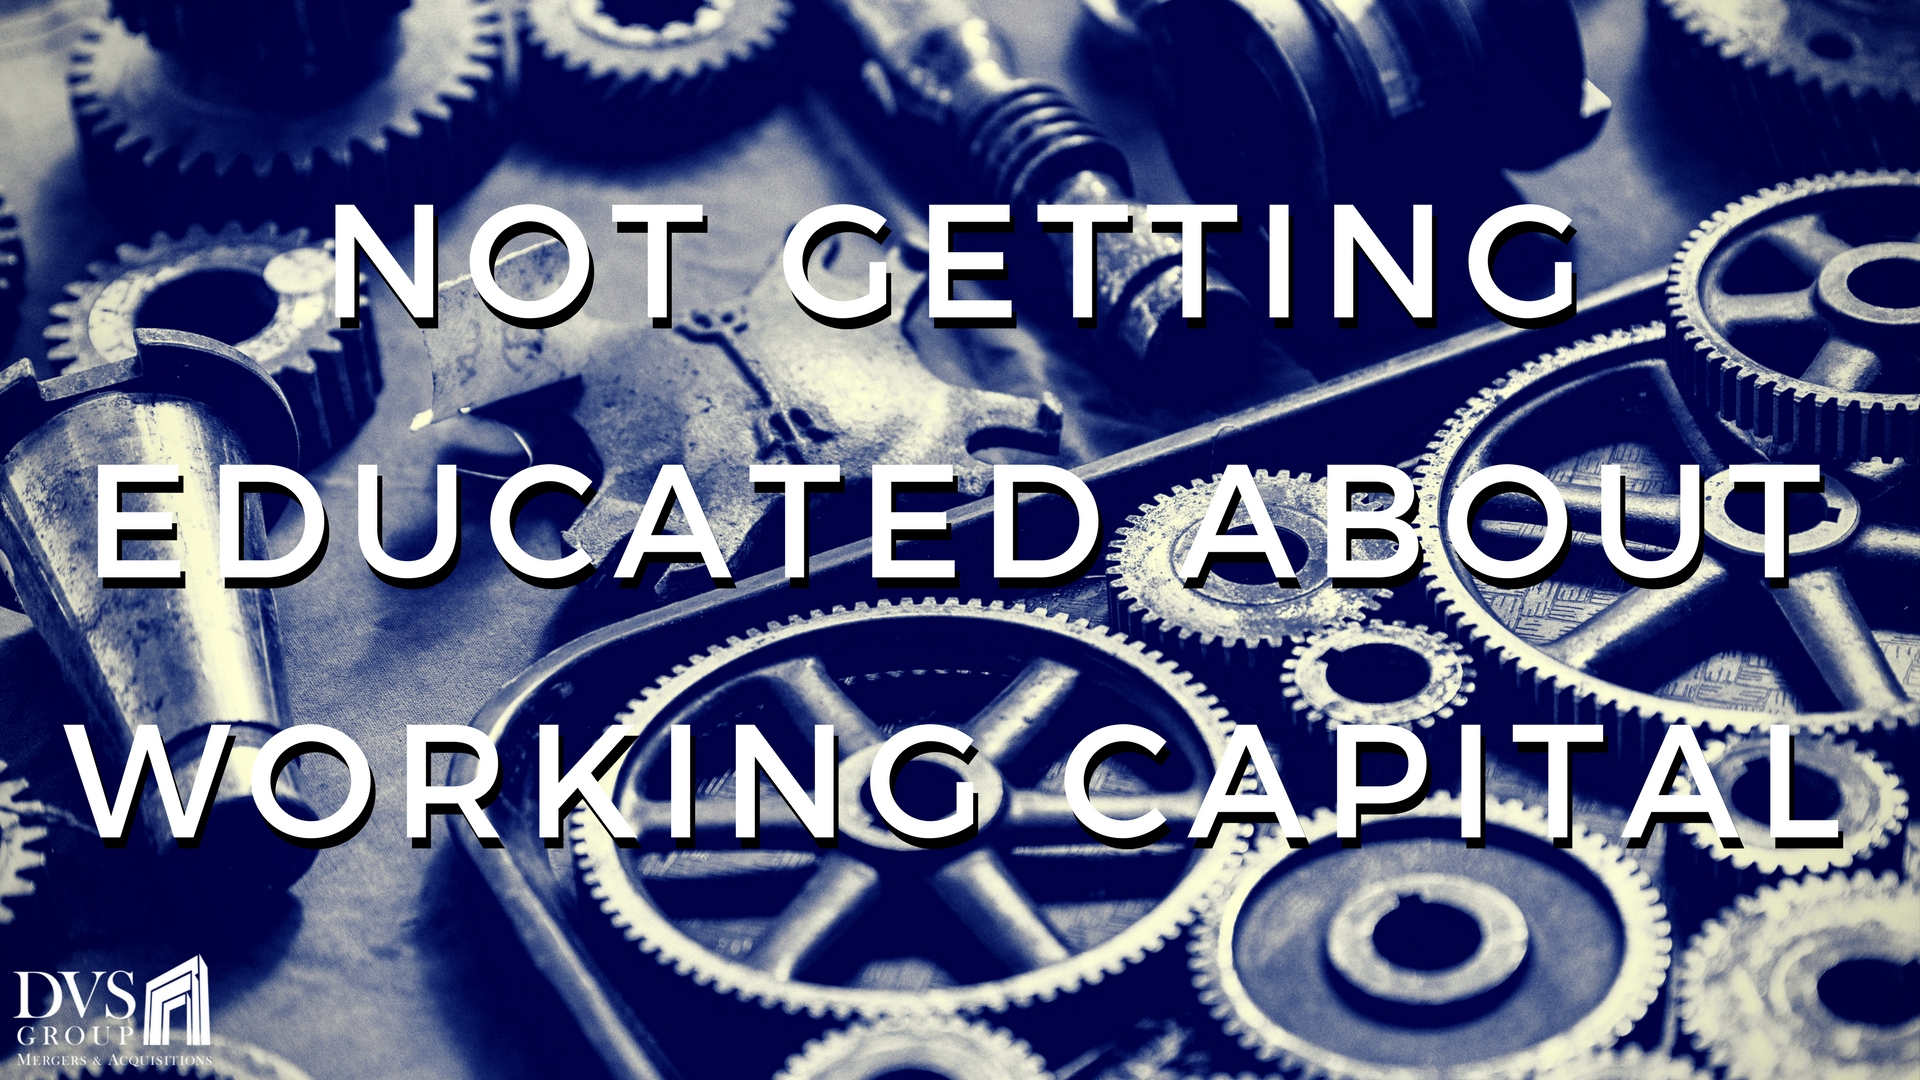 Not Getting Educated About Working Capital